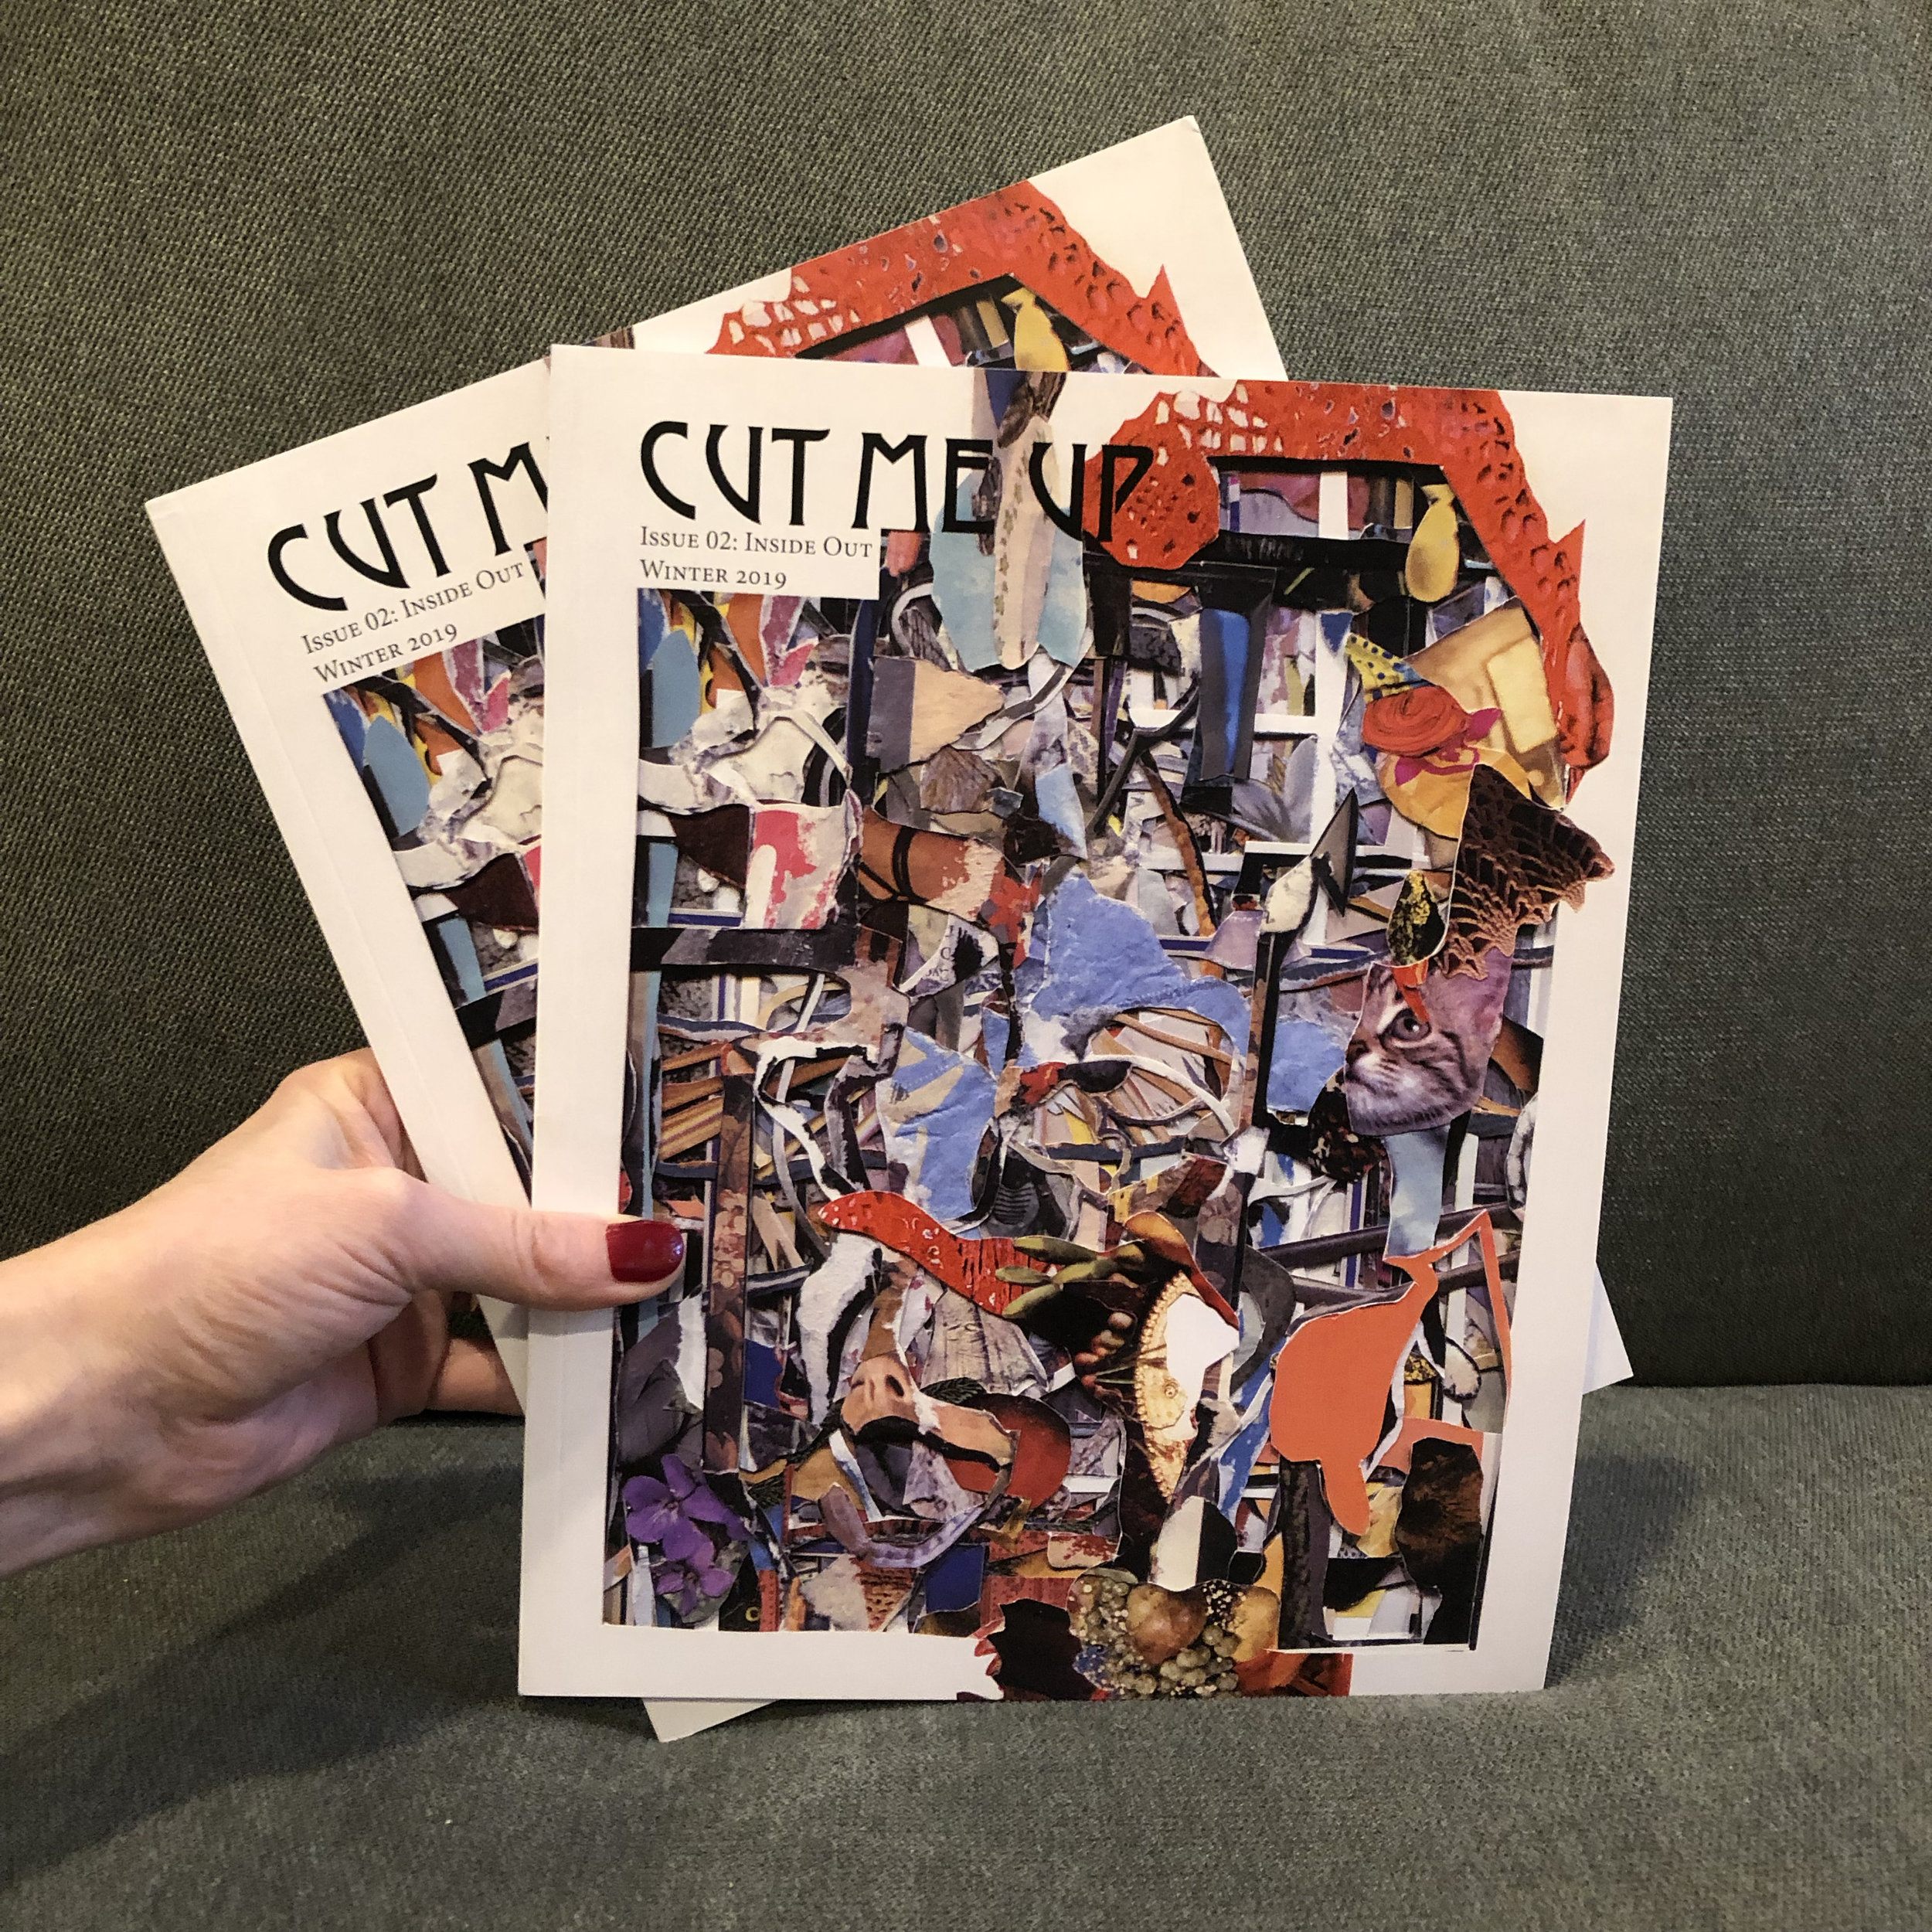 Cut Me Up Issue 2: Inside Out - Issue 2: Inside Out, was curated by myself and artist John Whitlock, featuring 19 original artworks selected from the responses to Issue 1. The featured artists unearthed layers of imagery and meaning from the works in Issue 1, transmuting and integrating these using personal iconographies and material processes.